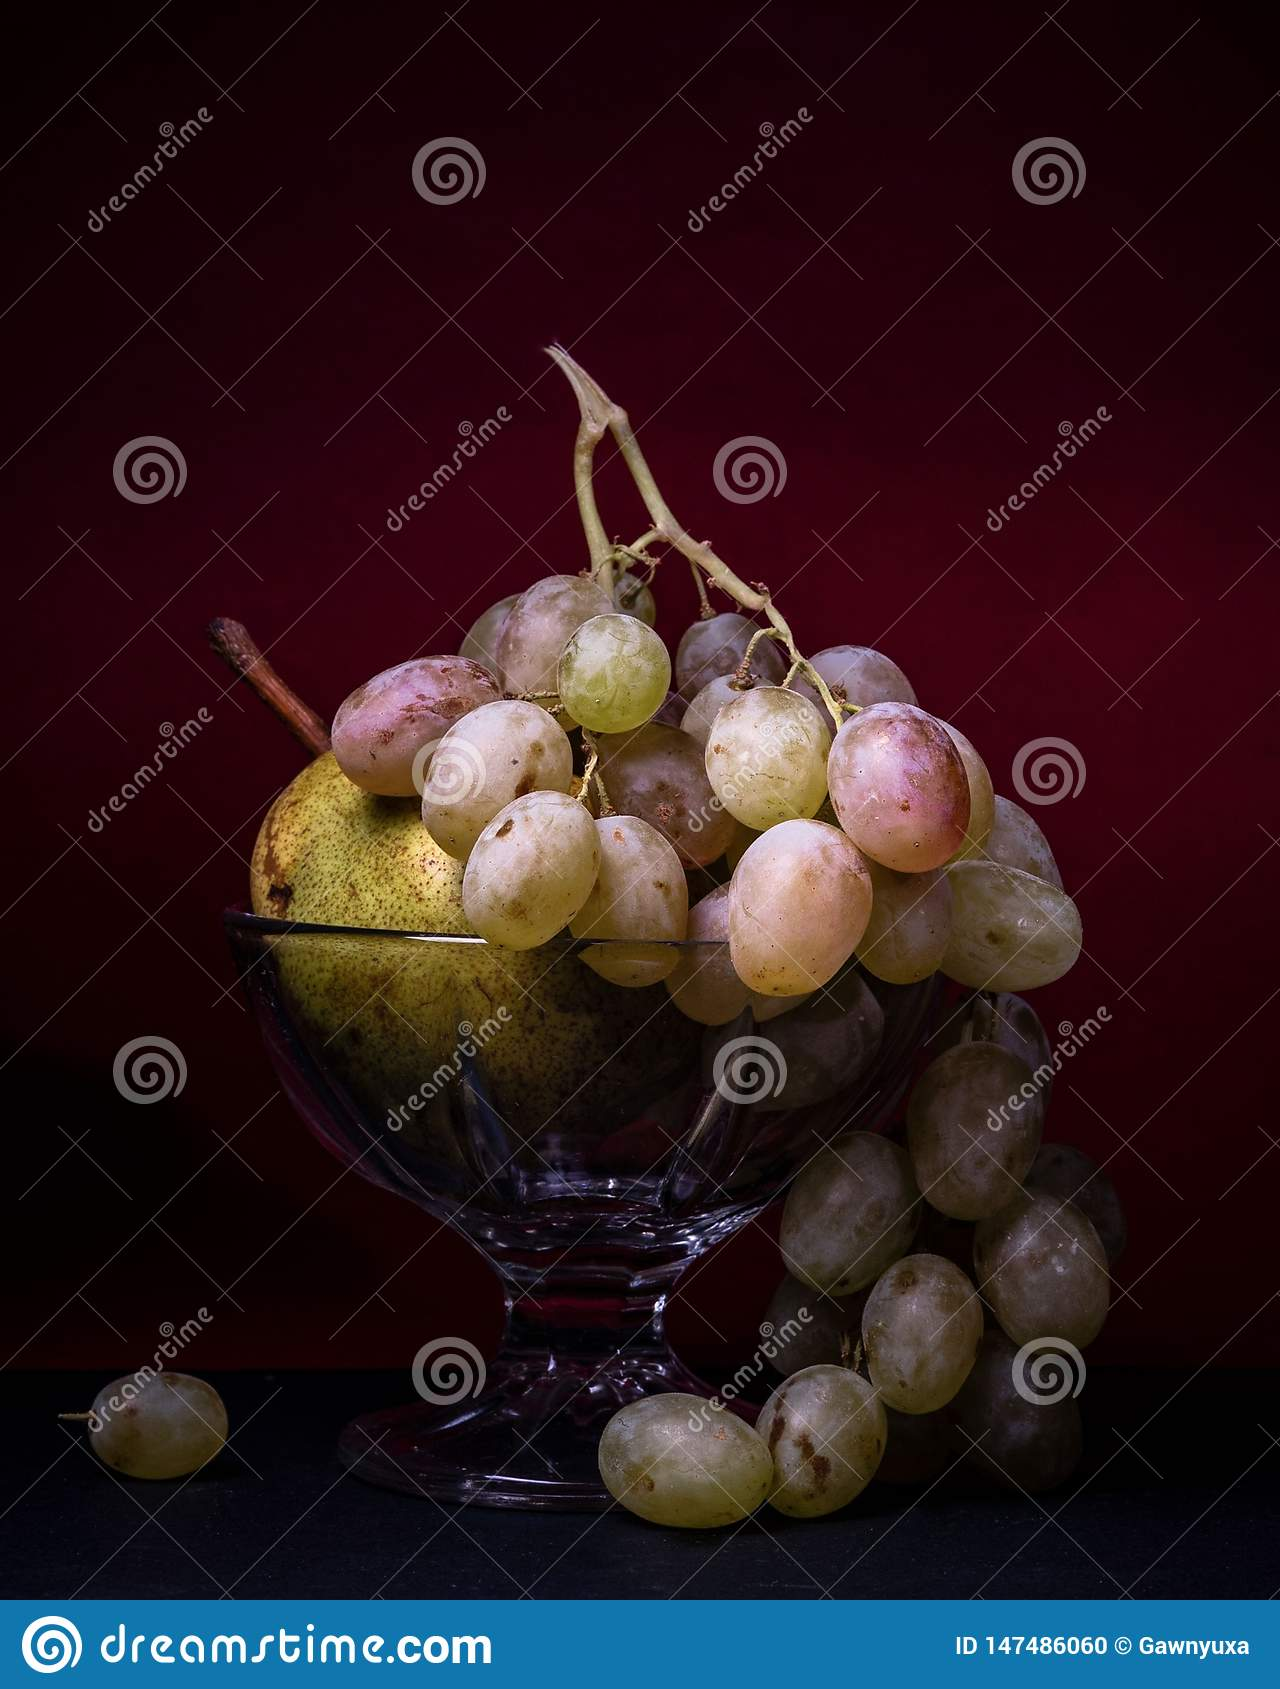 Fruit, still life food grapes pear bowl delicious